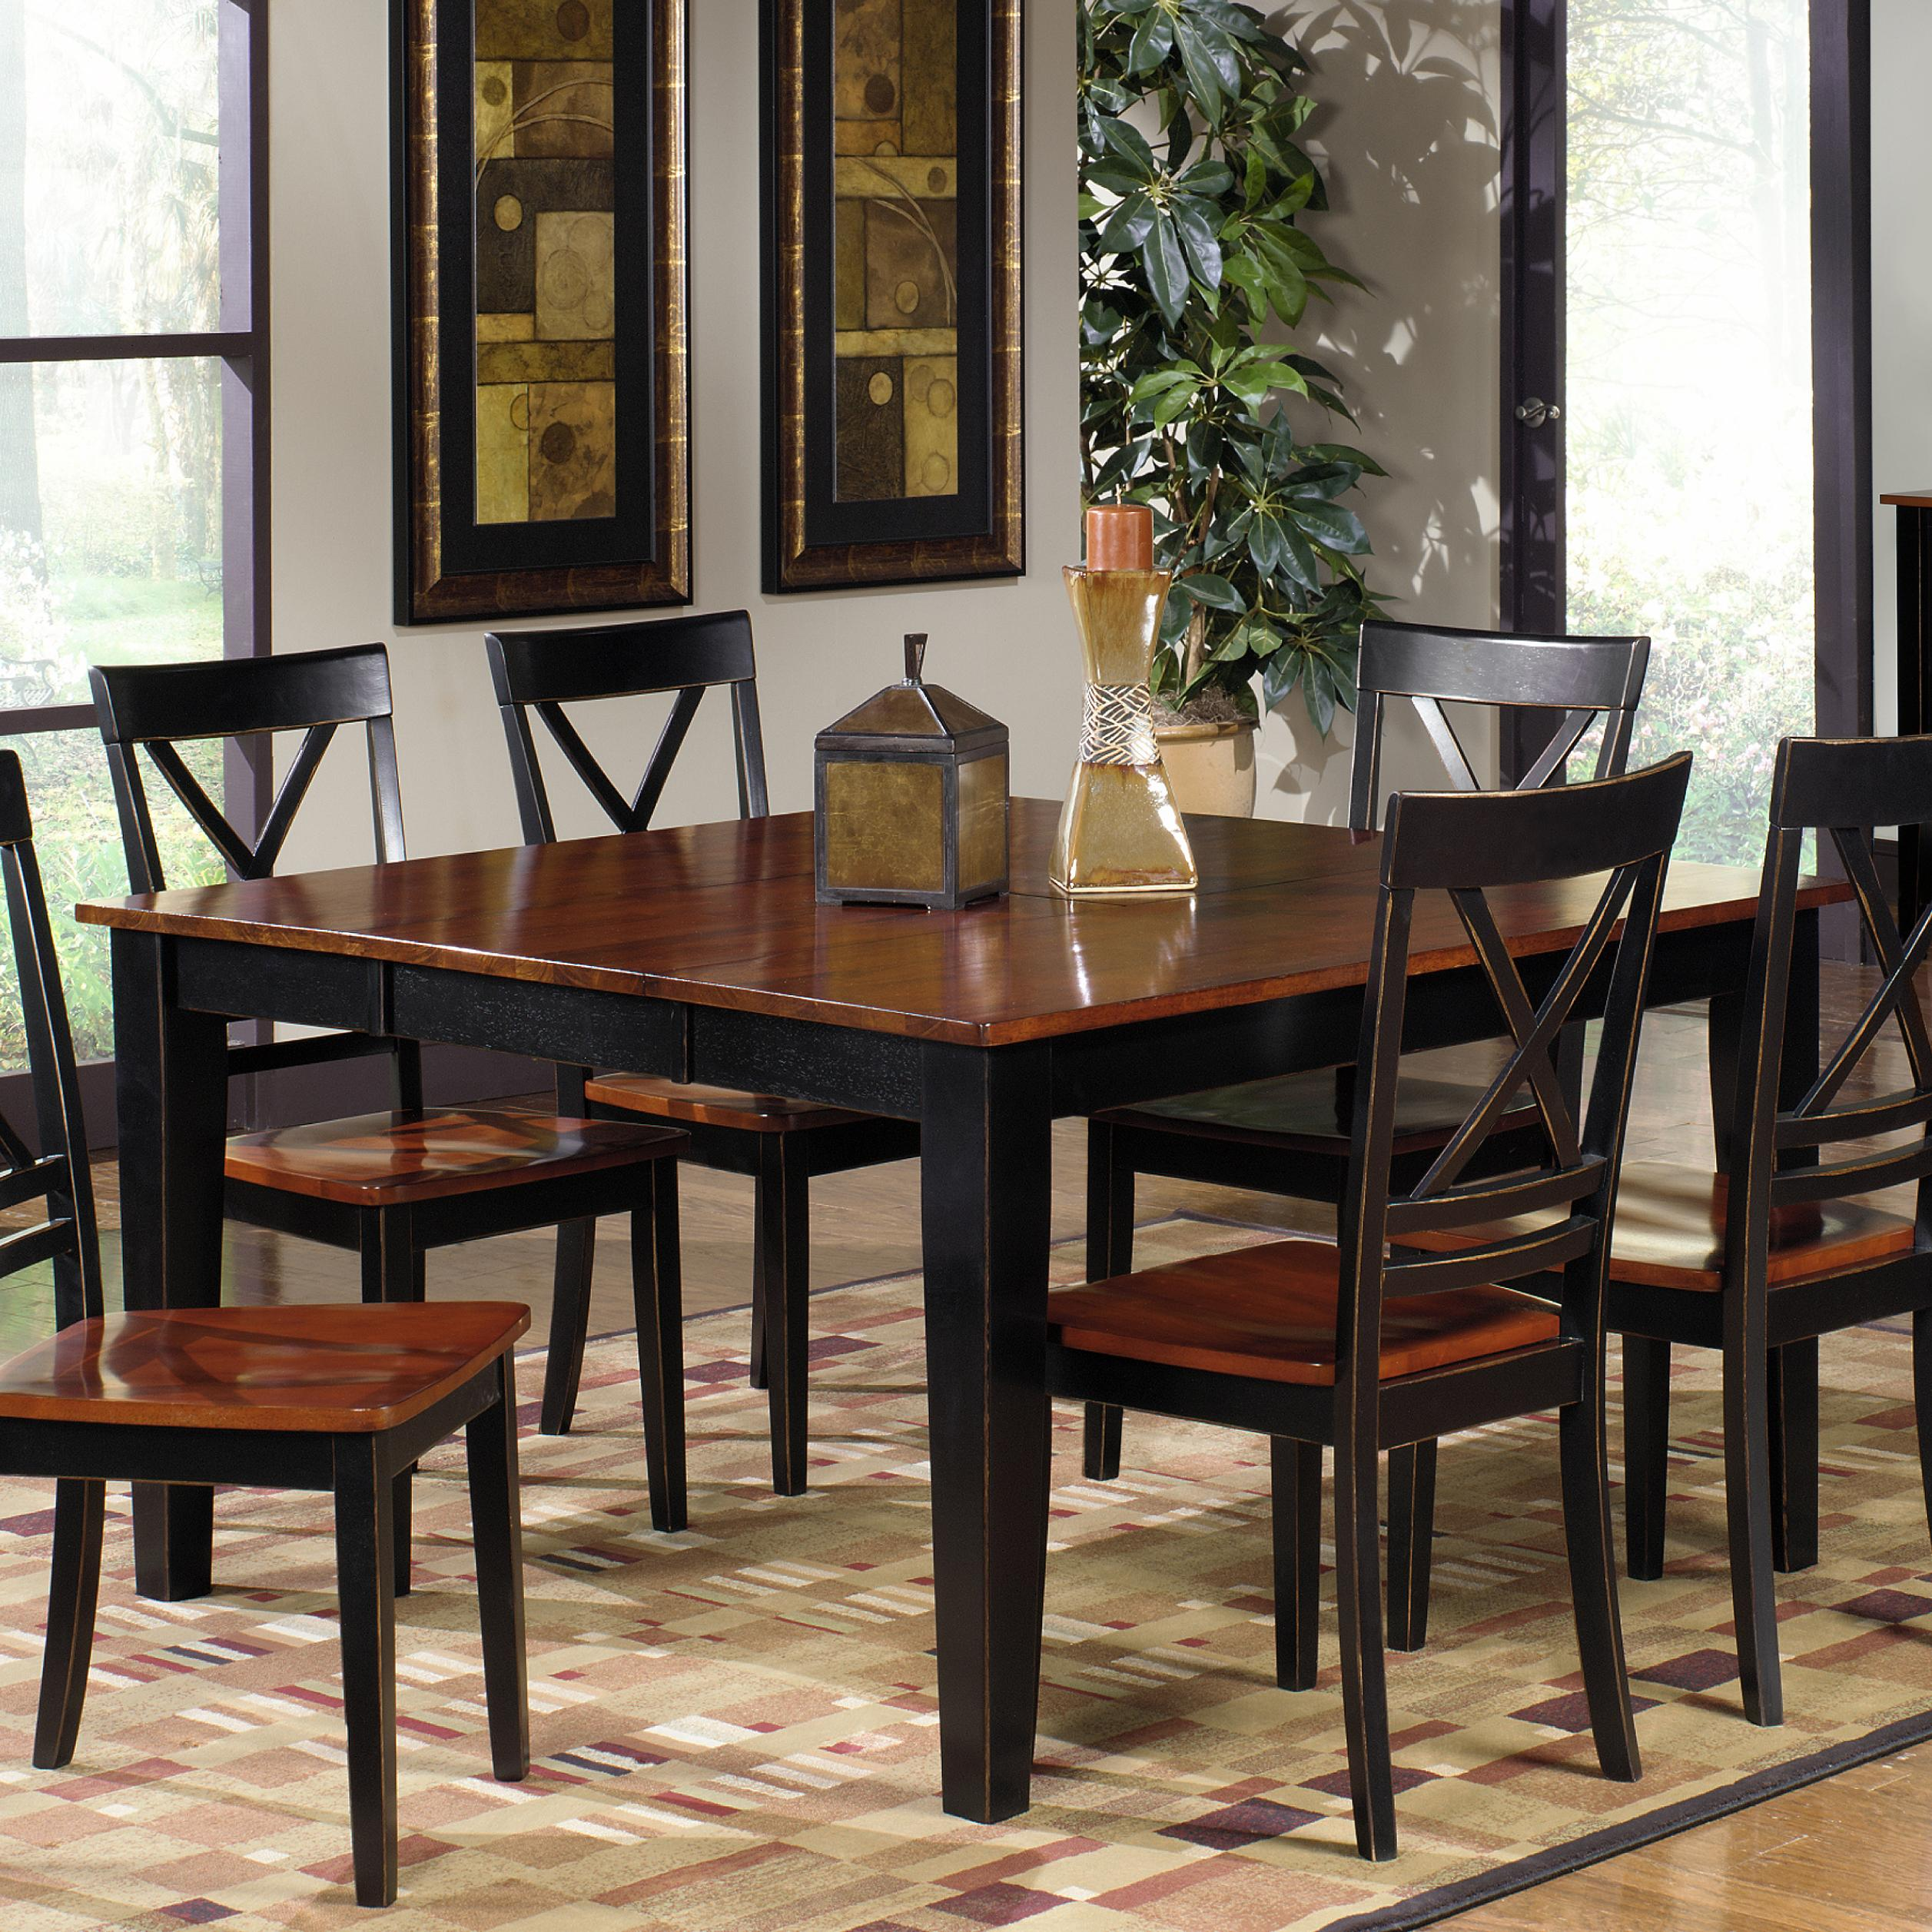 Progressive Furniture Cosmo Dining Table - Item Number: P809-10T+10B